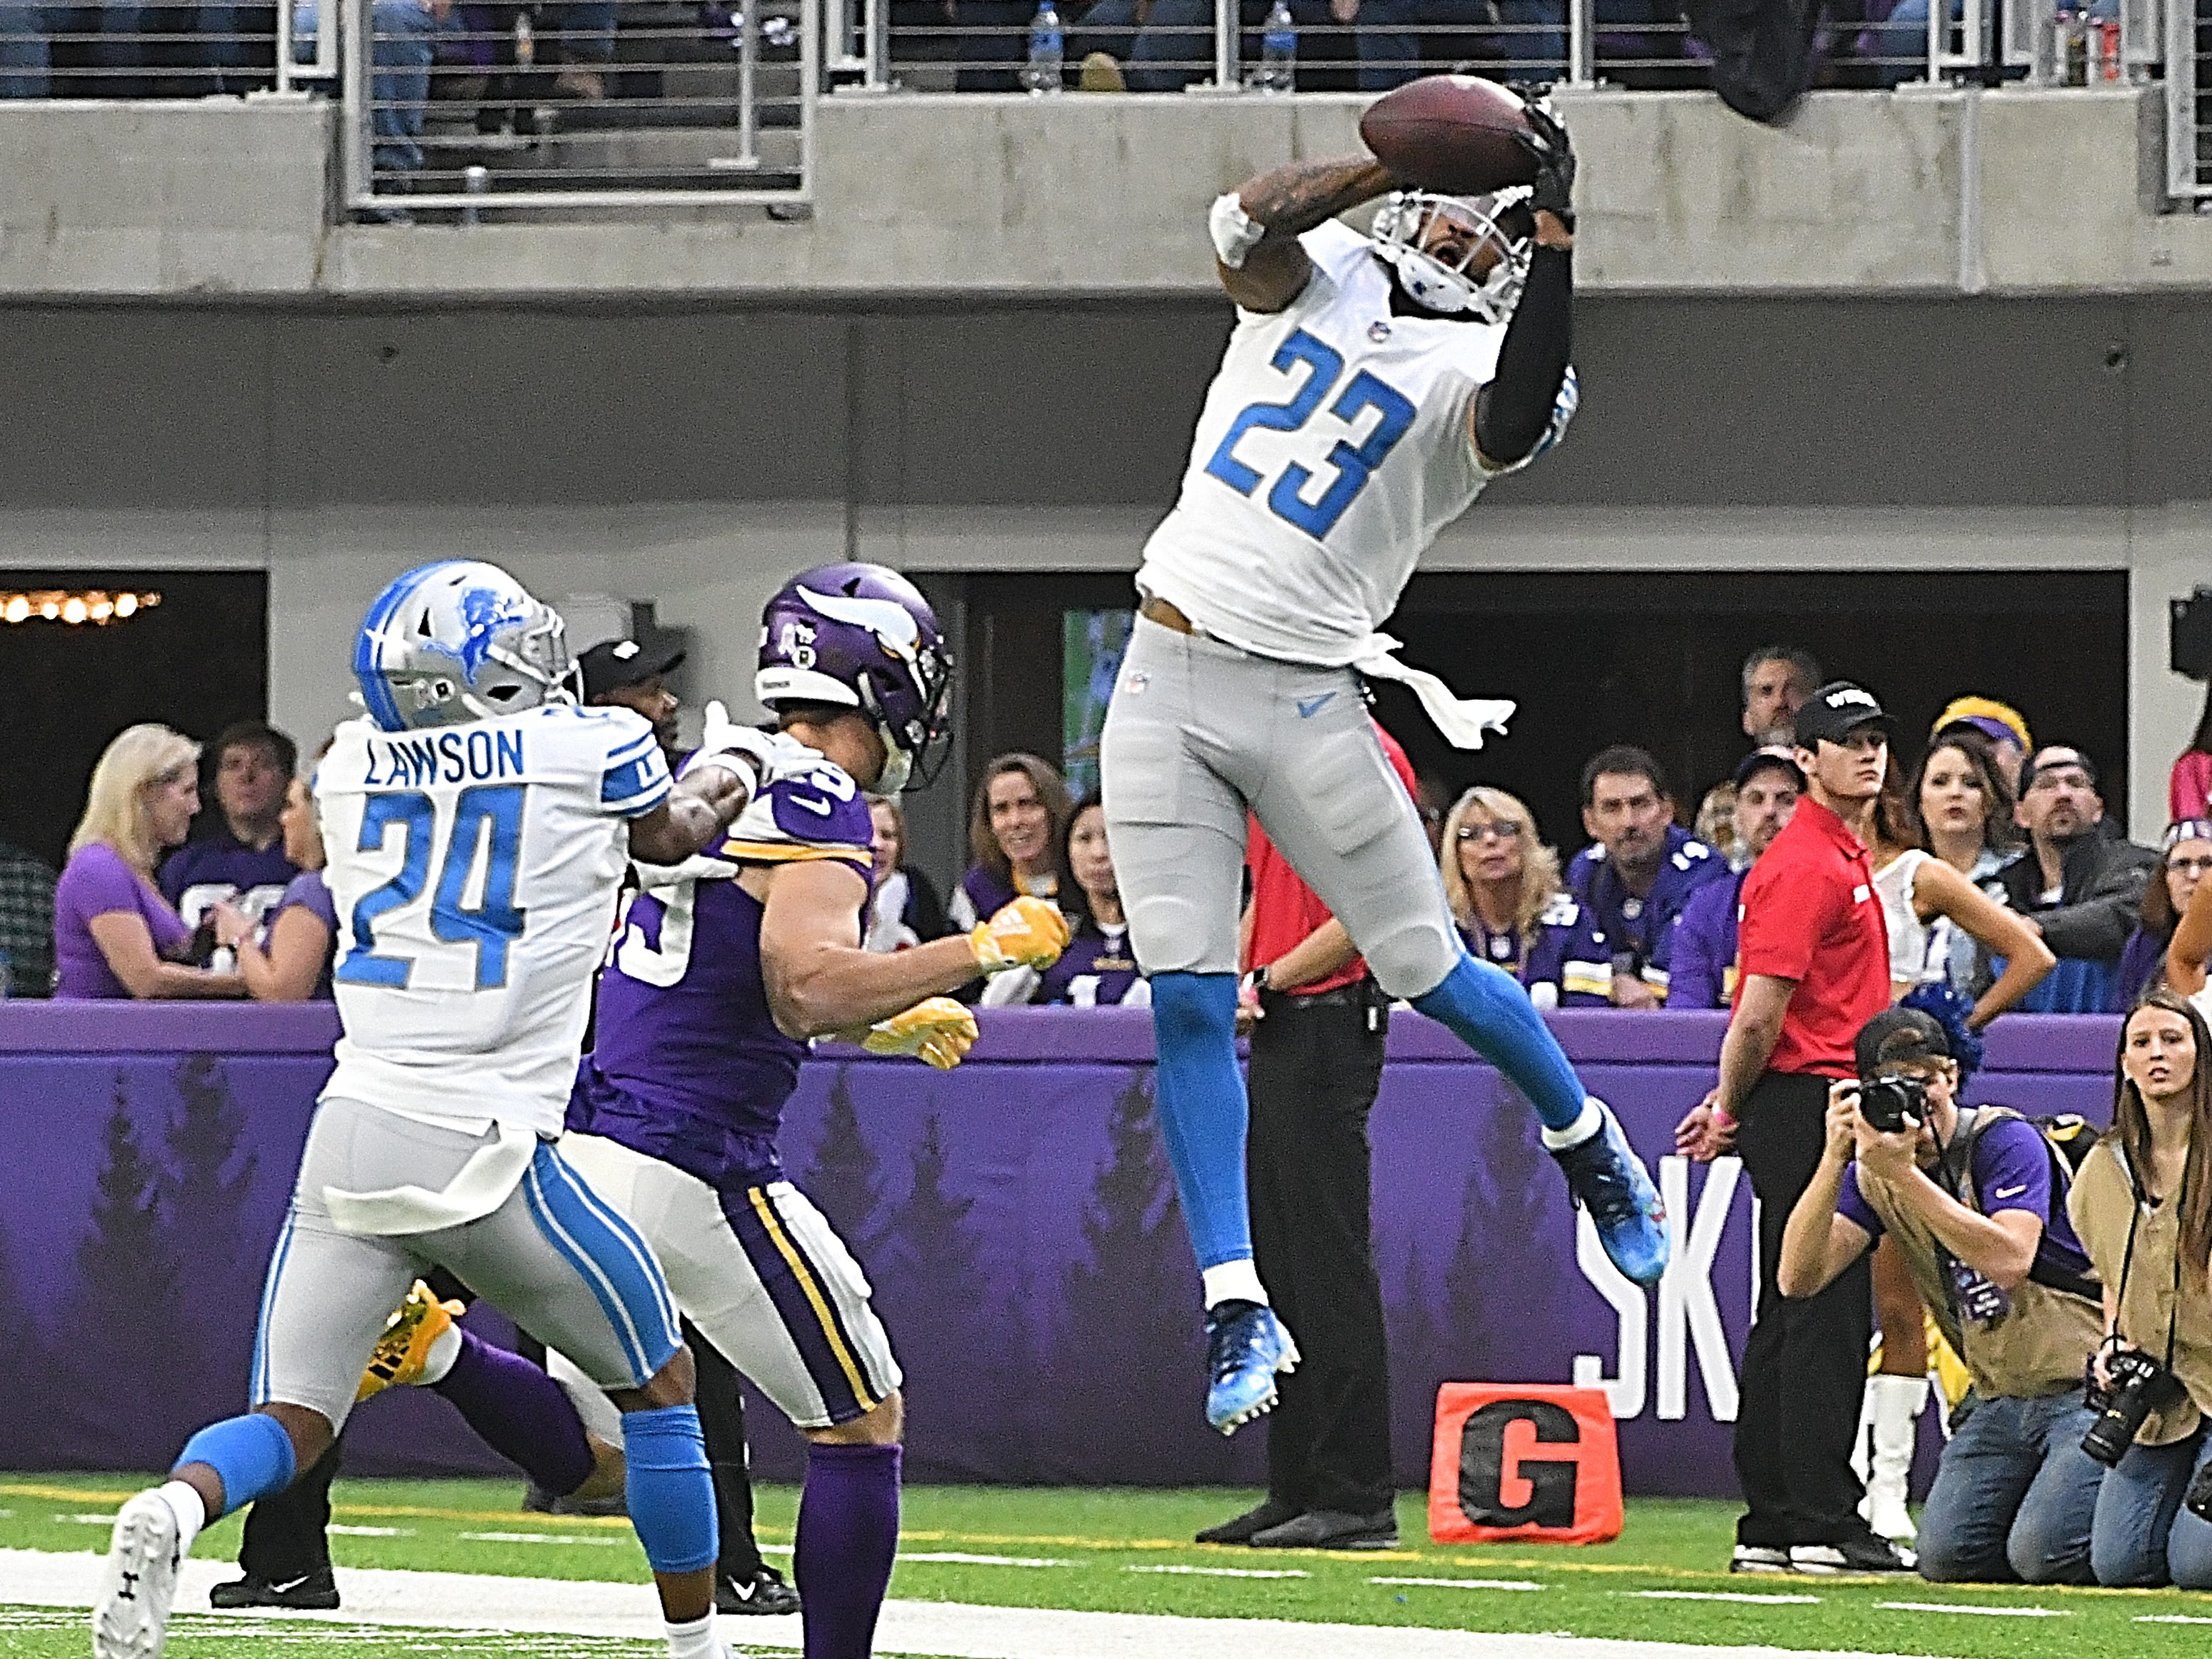 Lions' Darius Slay pulls down an interception intended for Vikings' Adam Thielen in the second quarter.